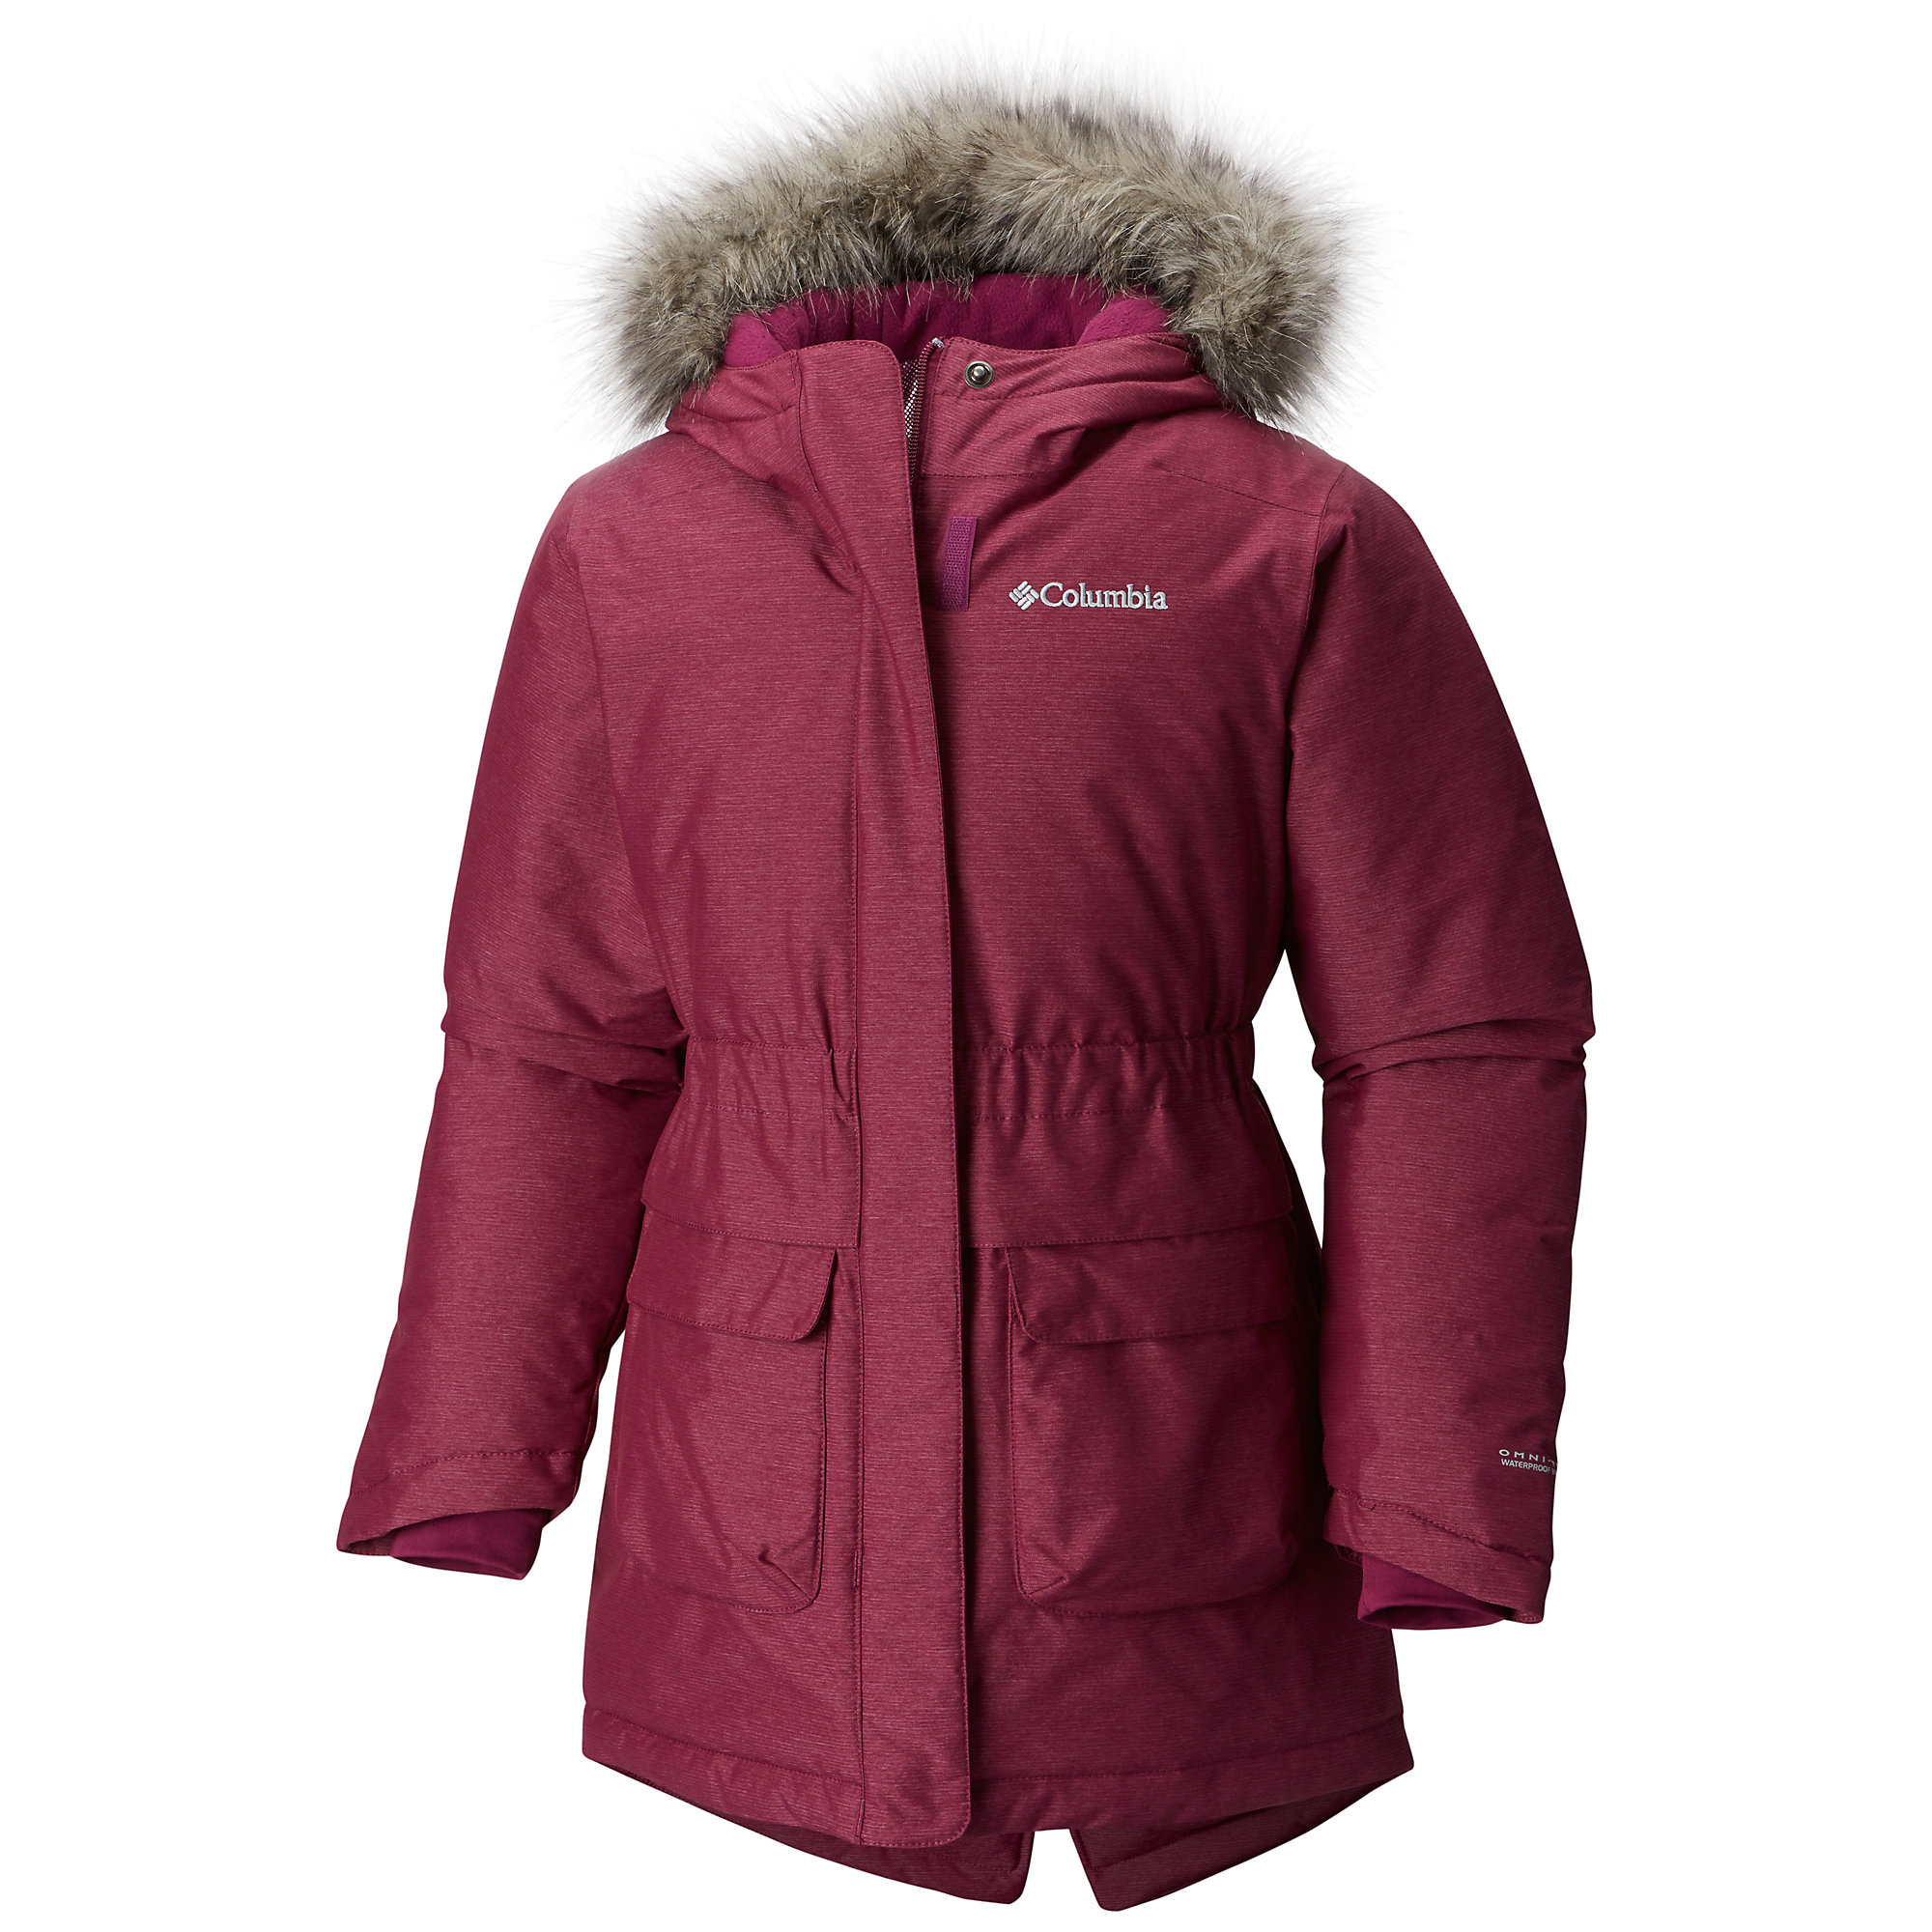 Columbia Nordic Strider Jacket